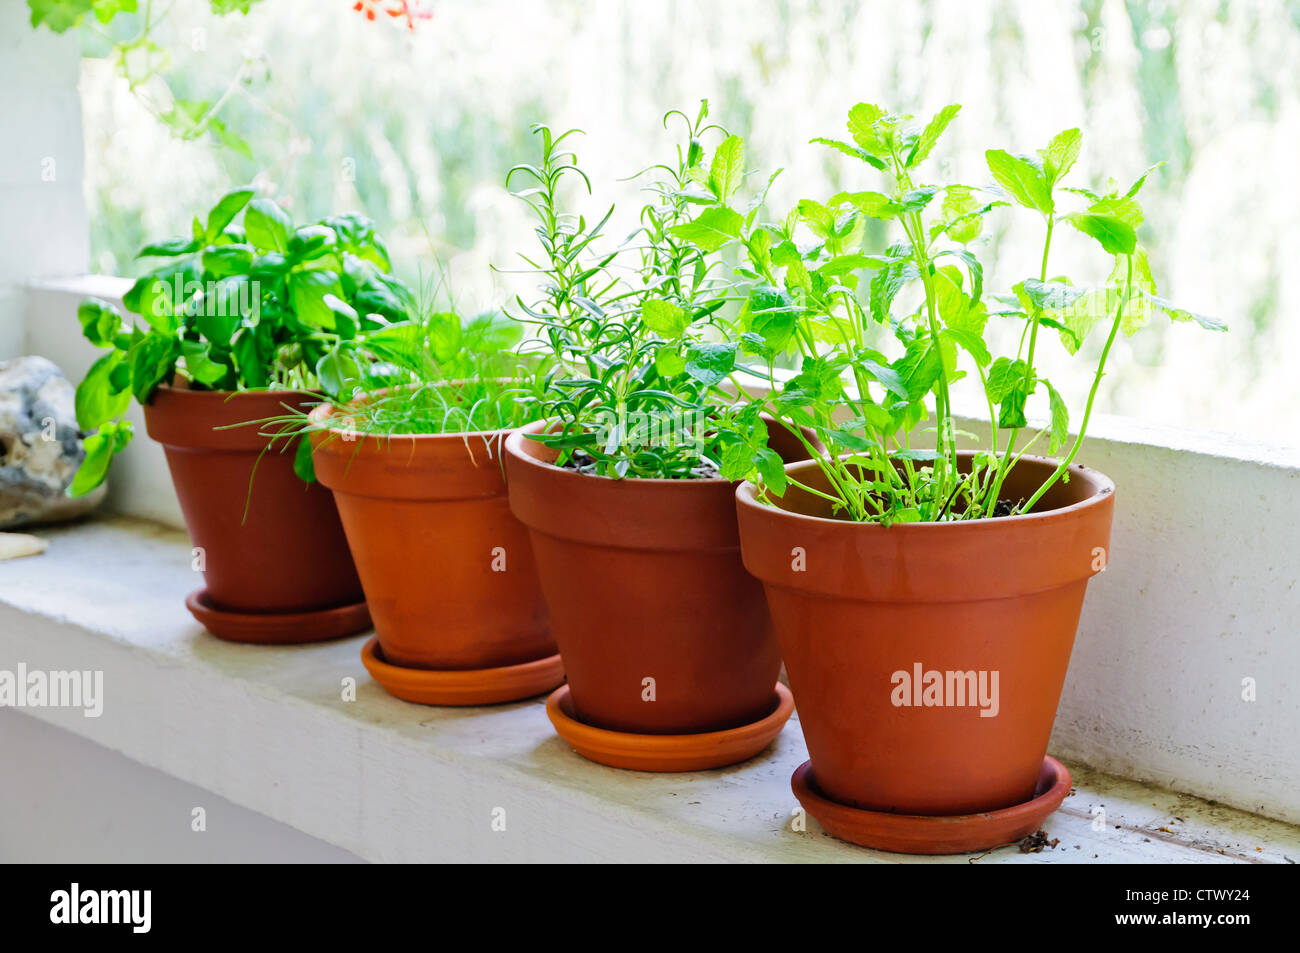 Pots with fresh green herbs on balcony - Stock Image